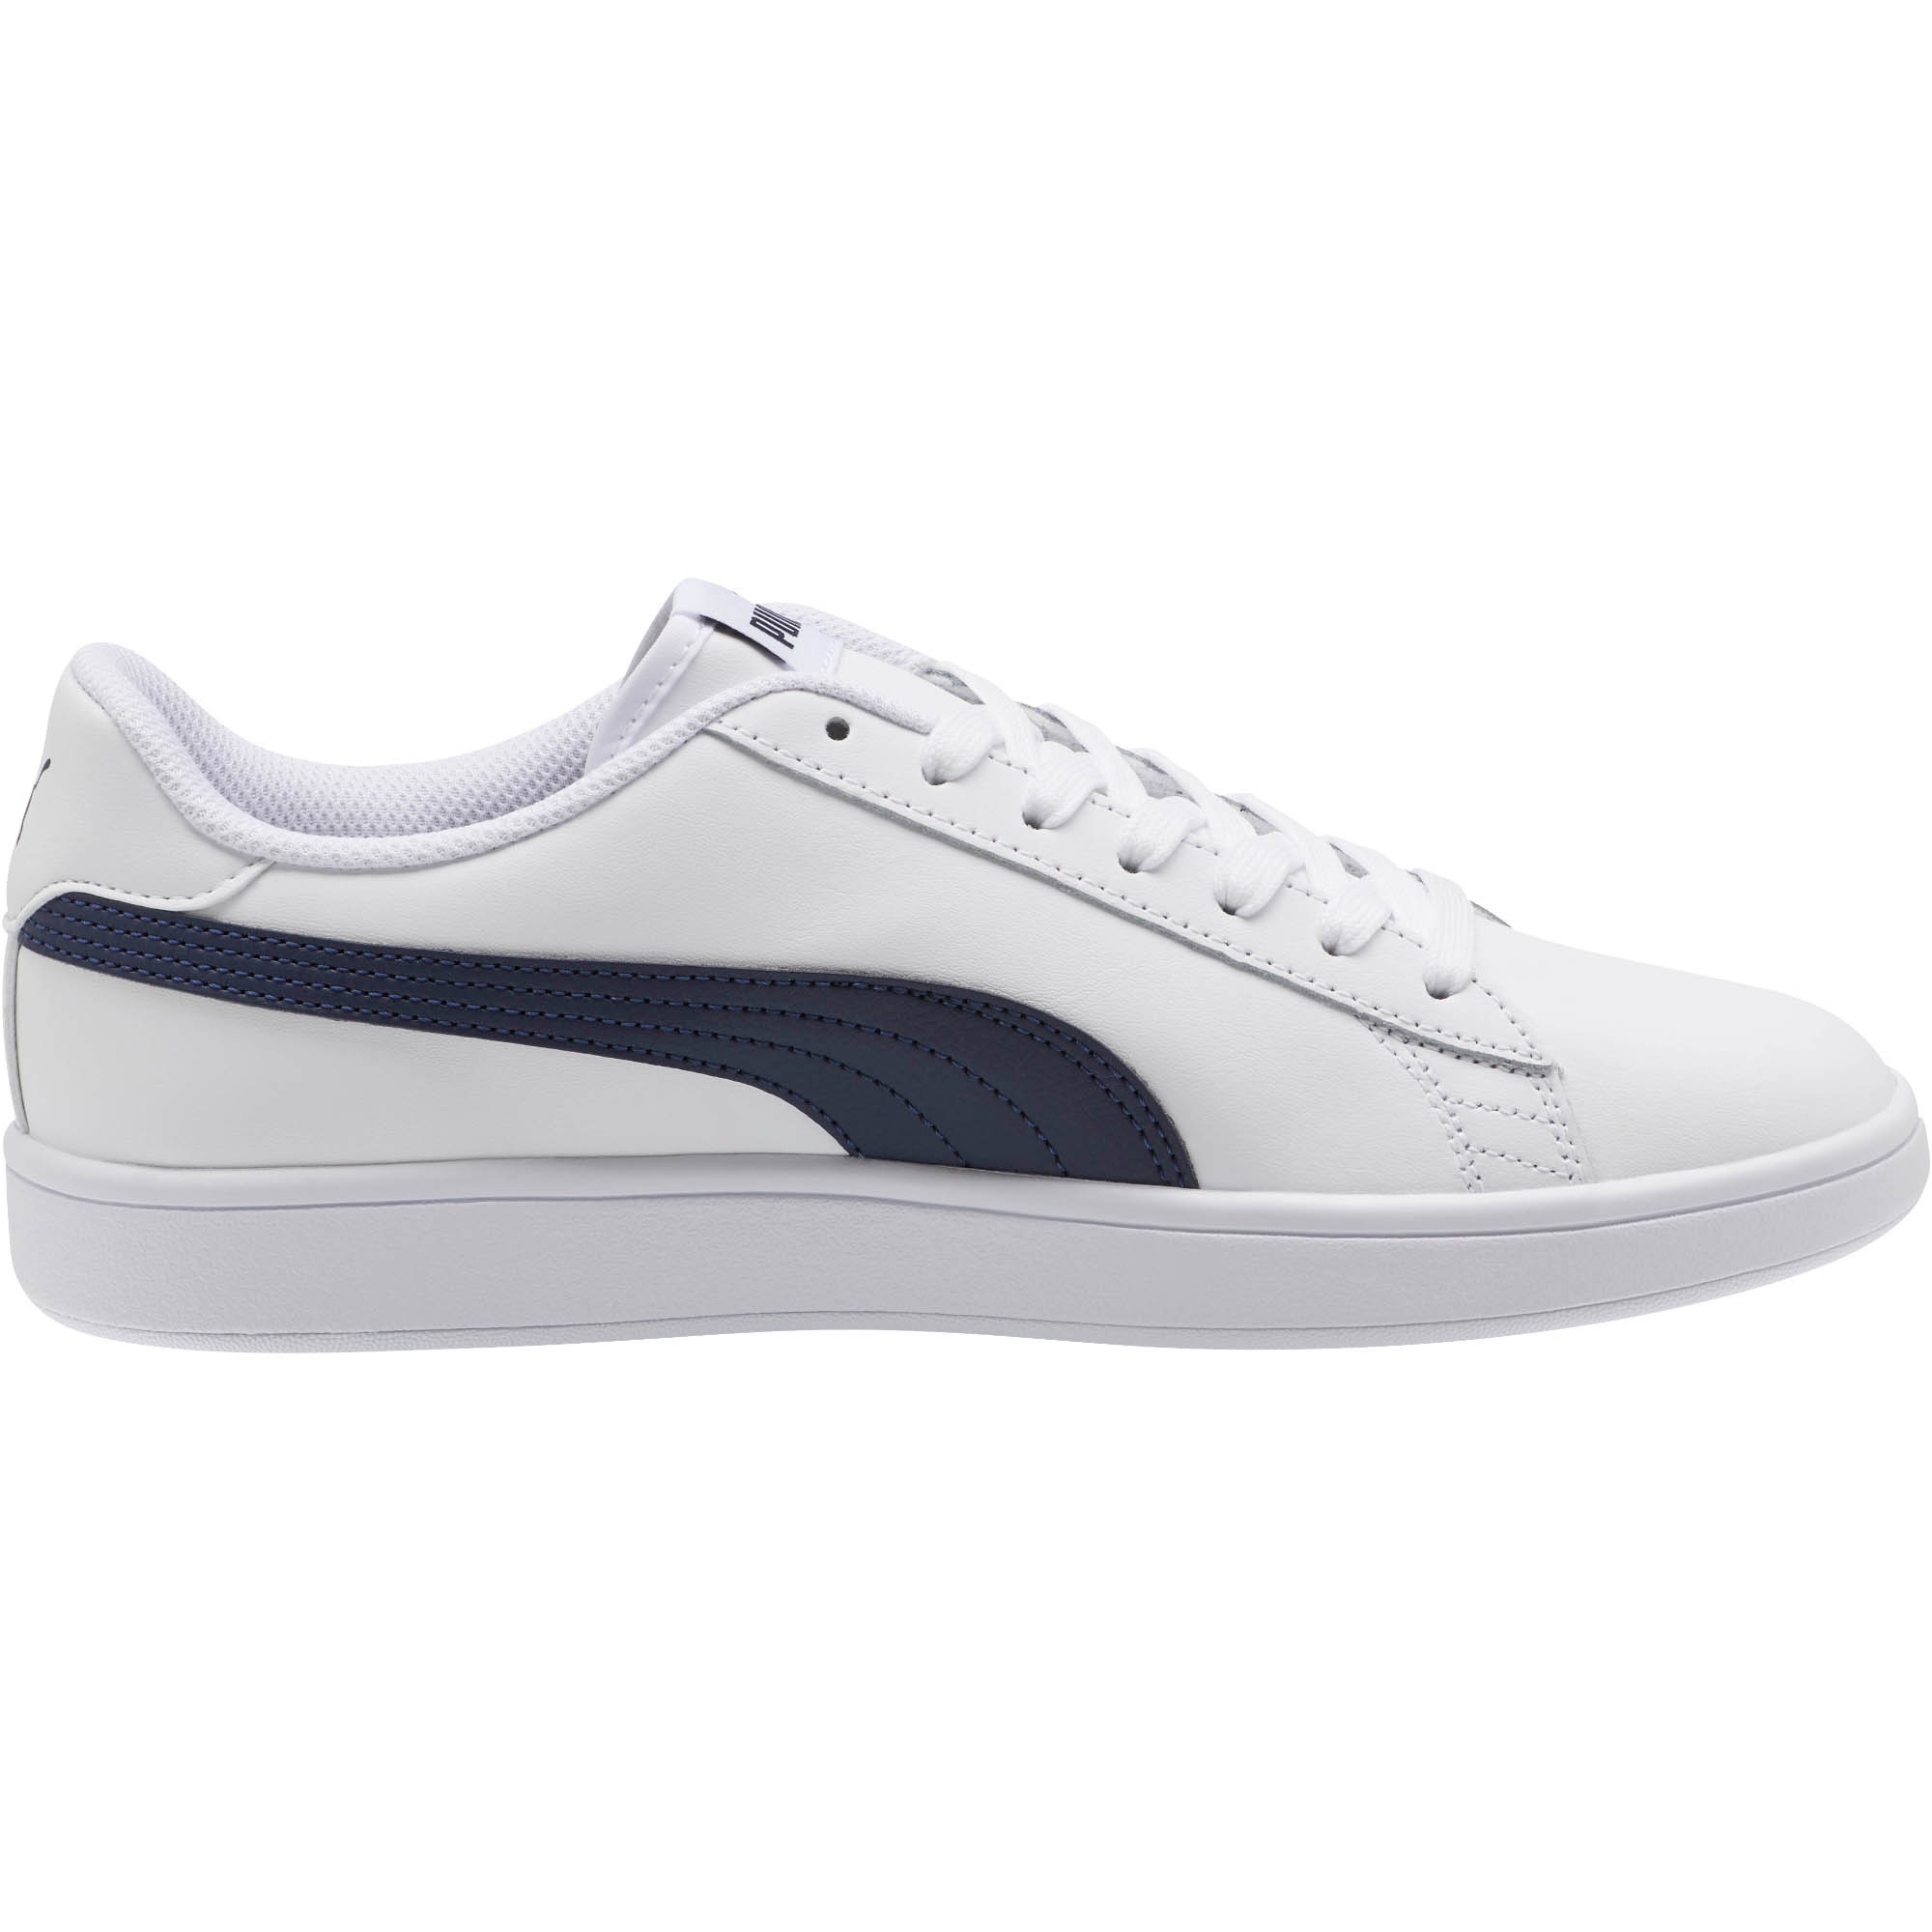 PUMA-PUMA-Smash-v2-Men-039-s-Sneakers-Men-Shoe-Basics thumbnail 15